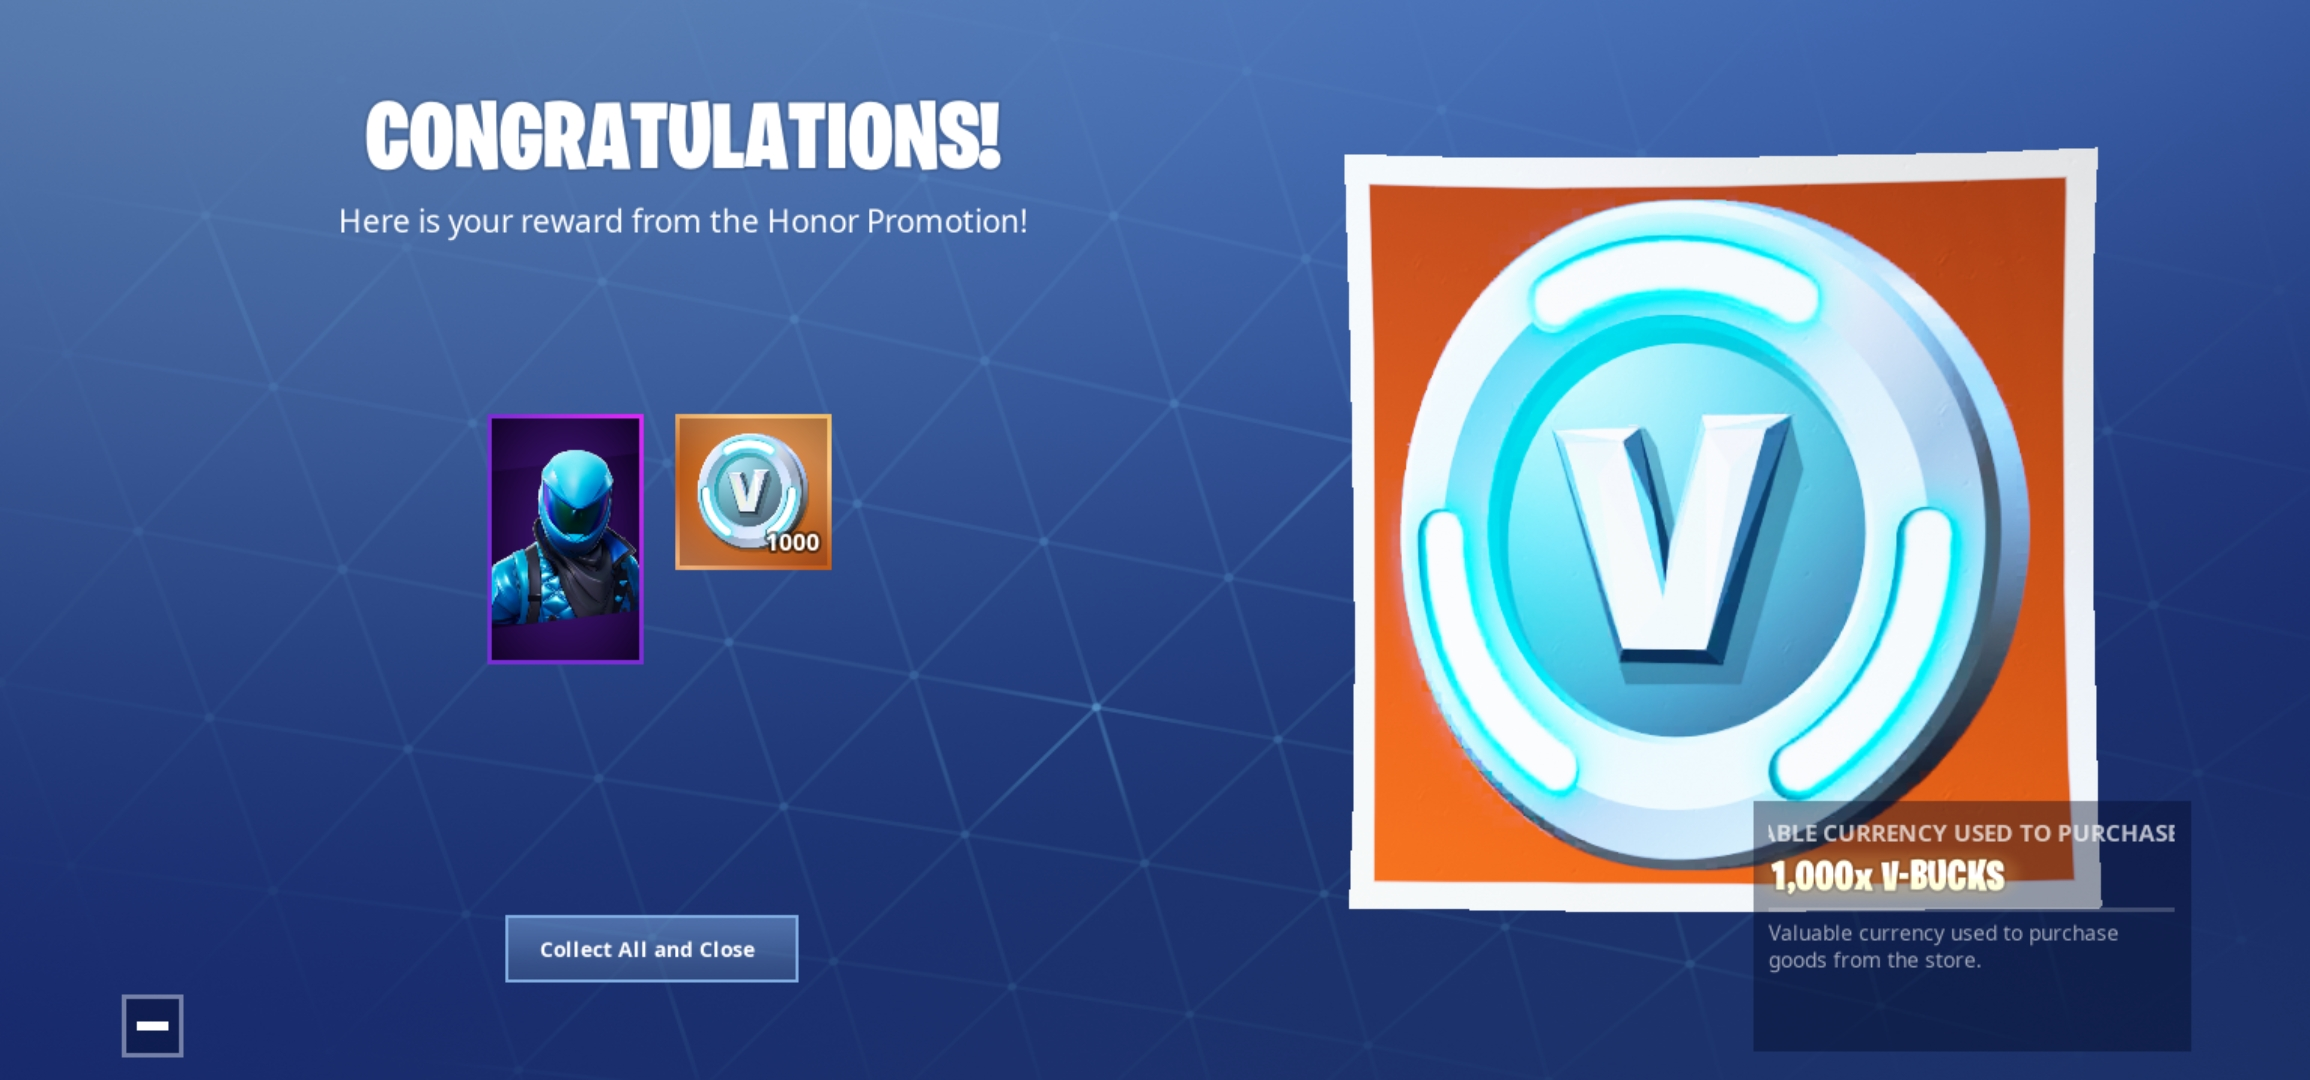 V Bucks Packs Danielarnoldfoundation Org - Mp3prohypnosis com